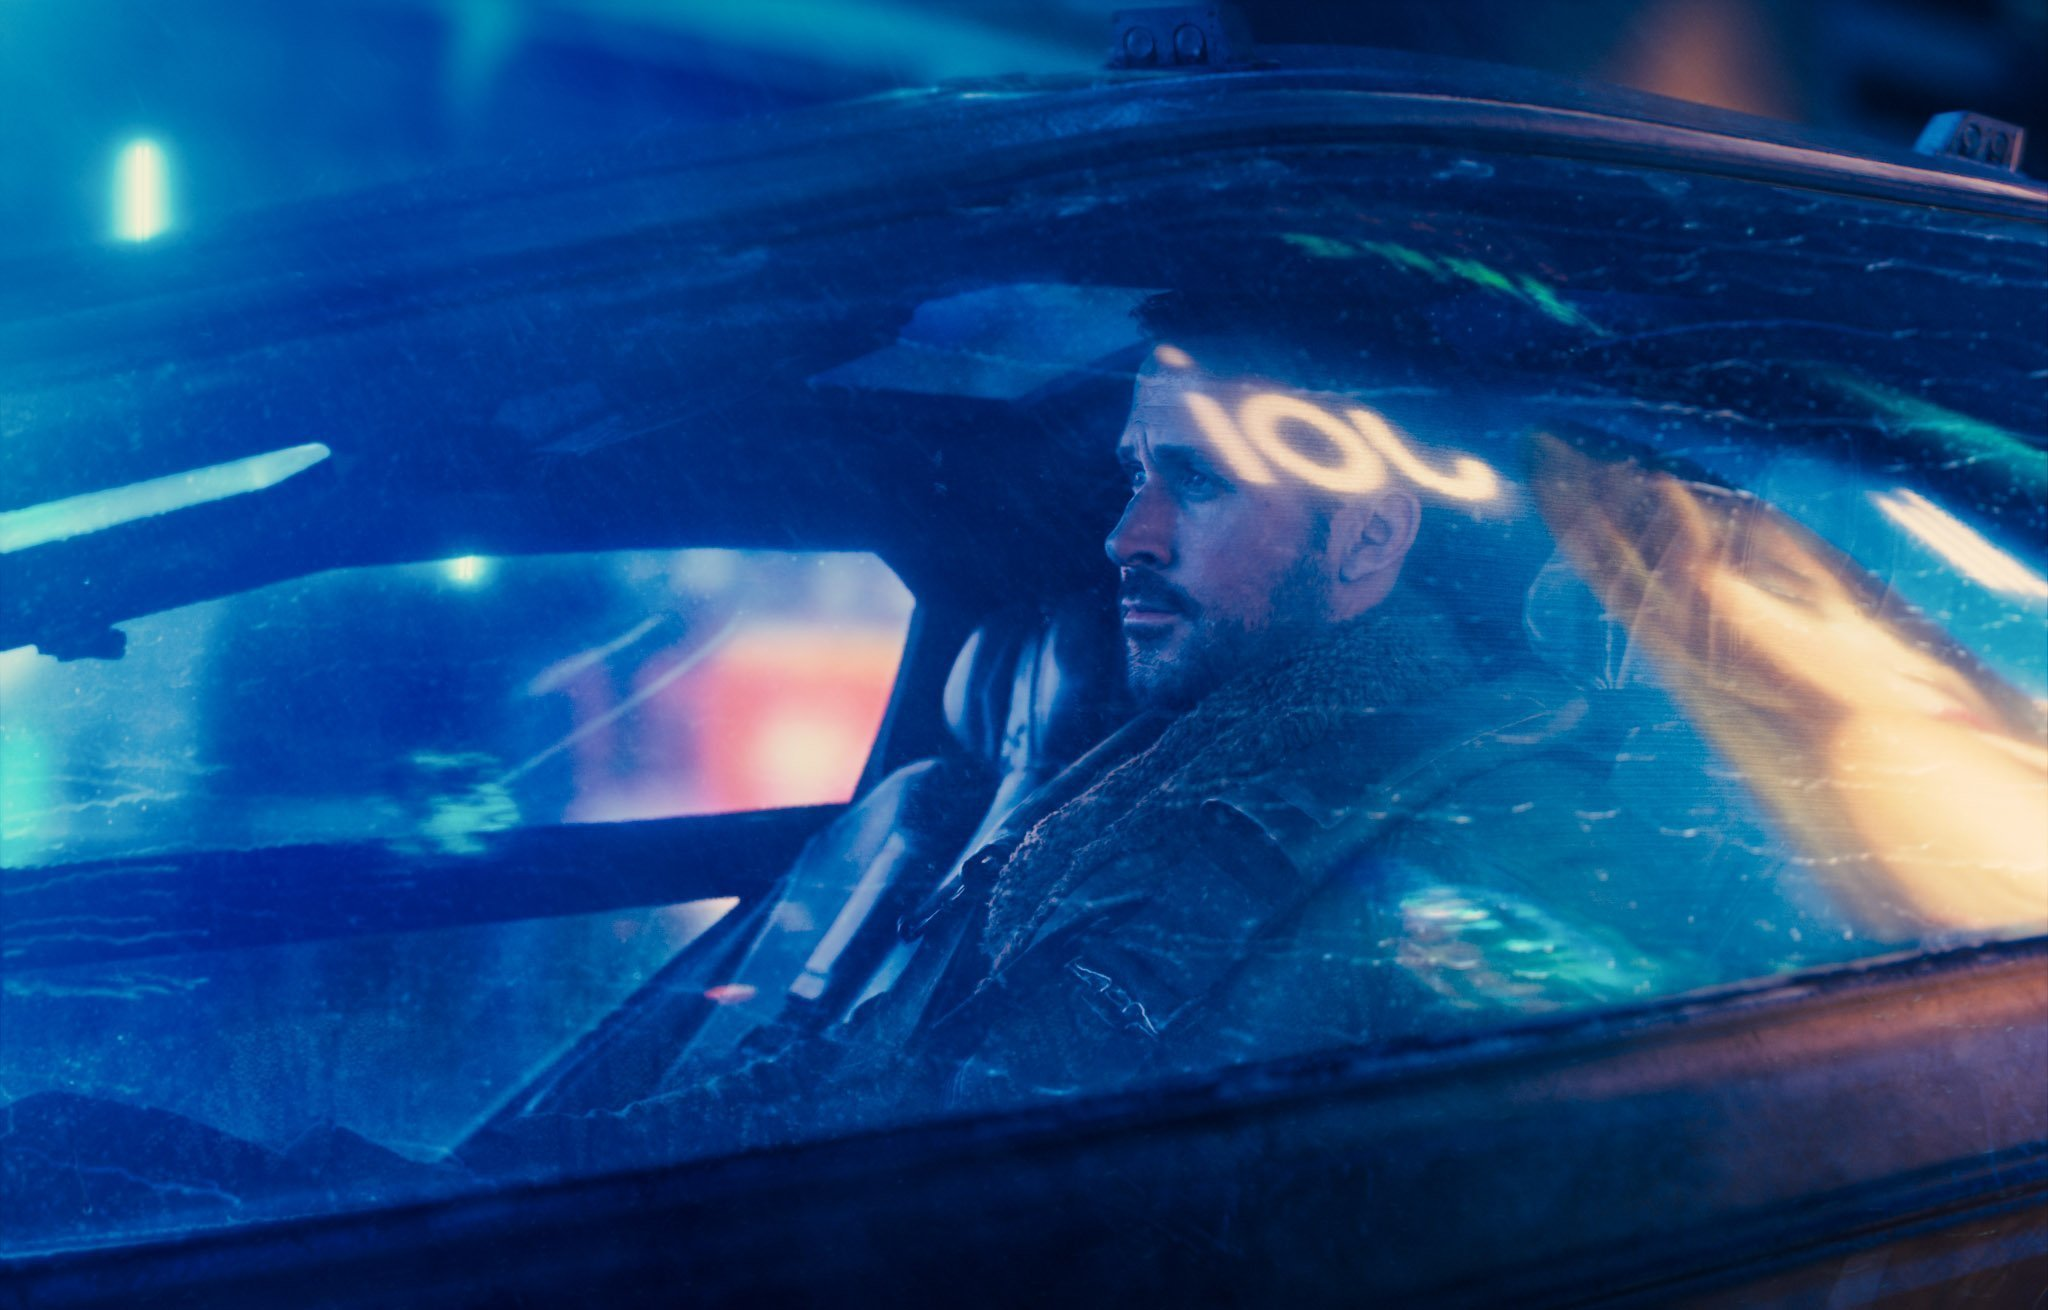 Photo du film Blade Runner 2049 avec K (Ryan Gosling)